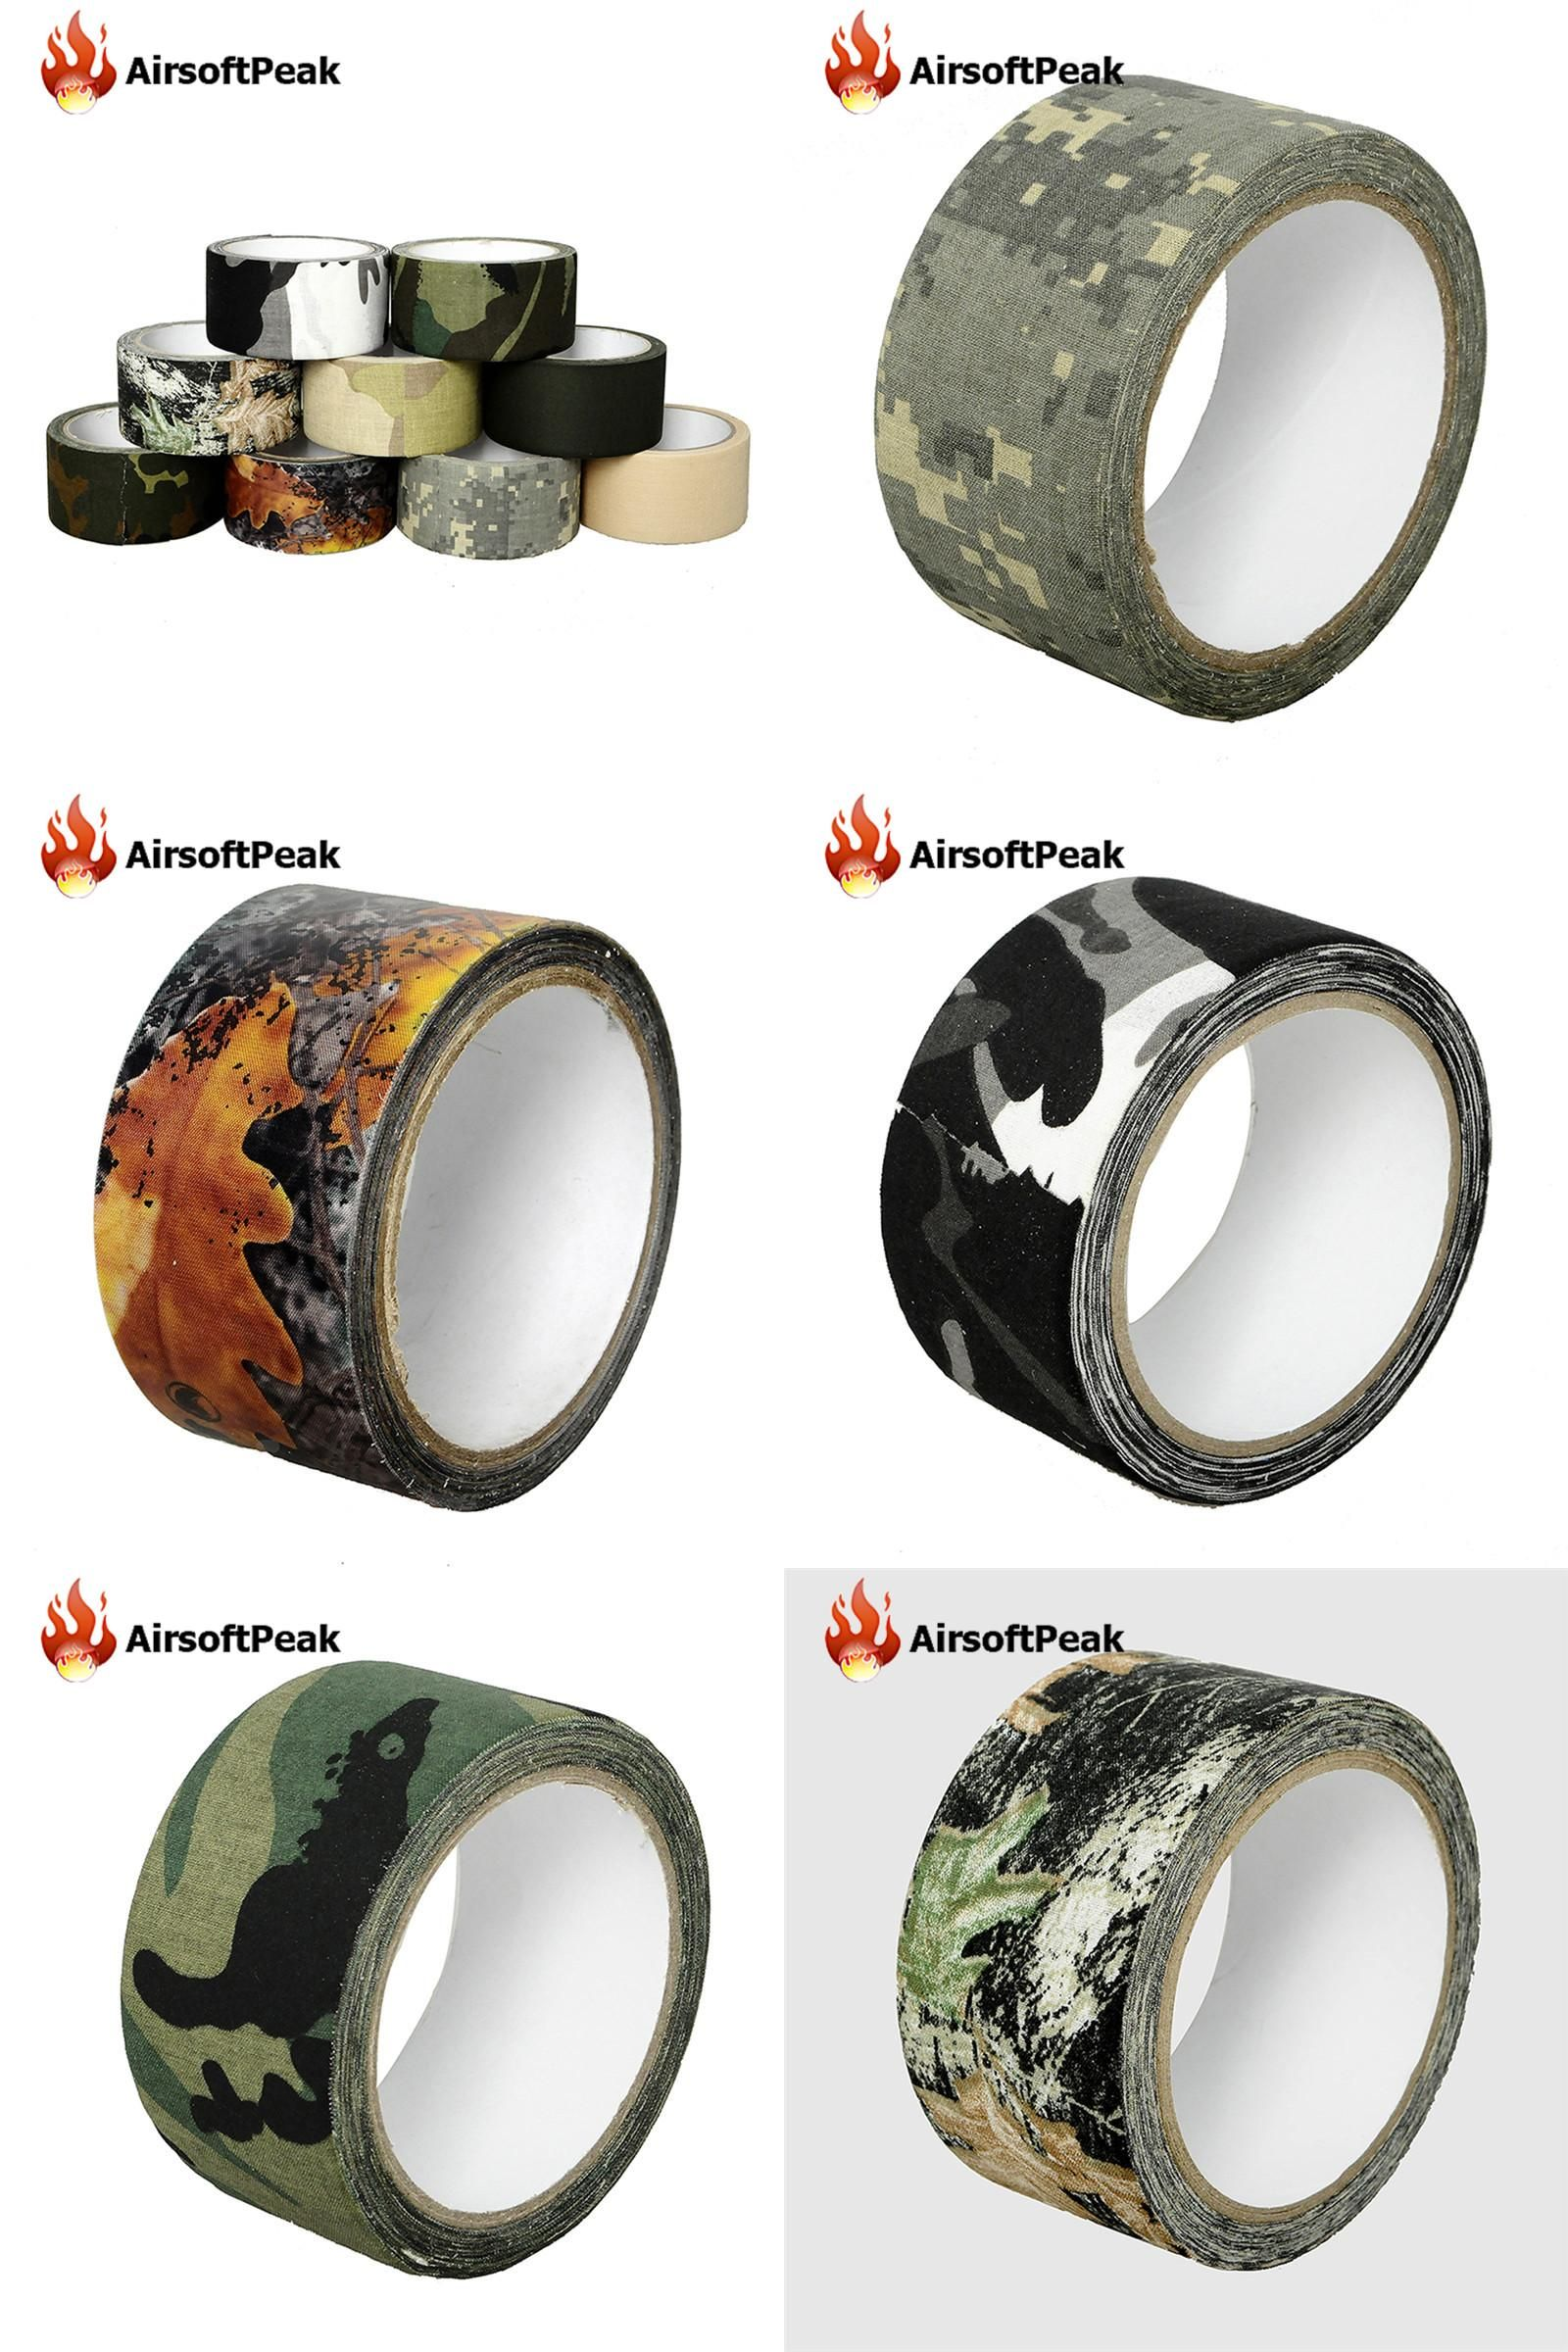 Visit to Buy] 10M Camo Wrap Outdoor Hunting Bionic Tape